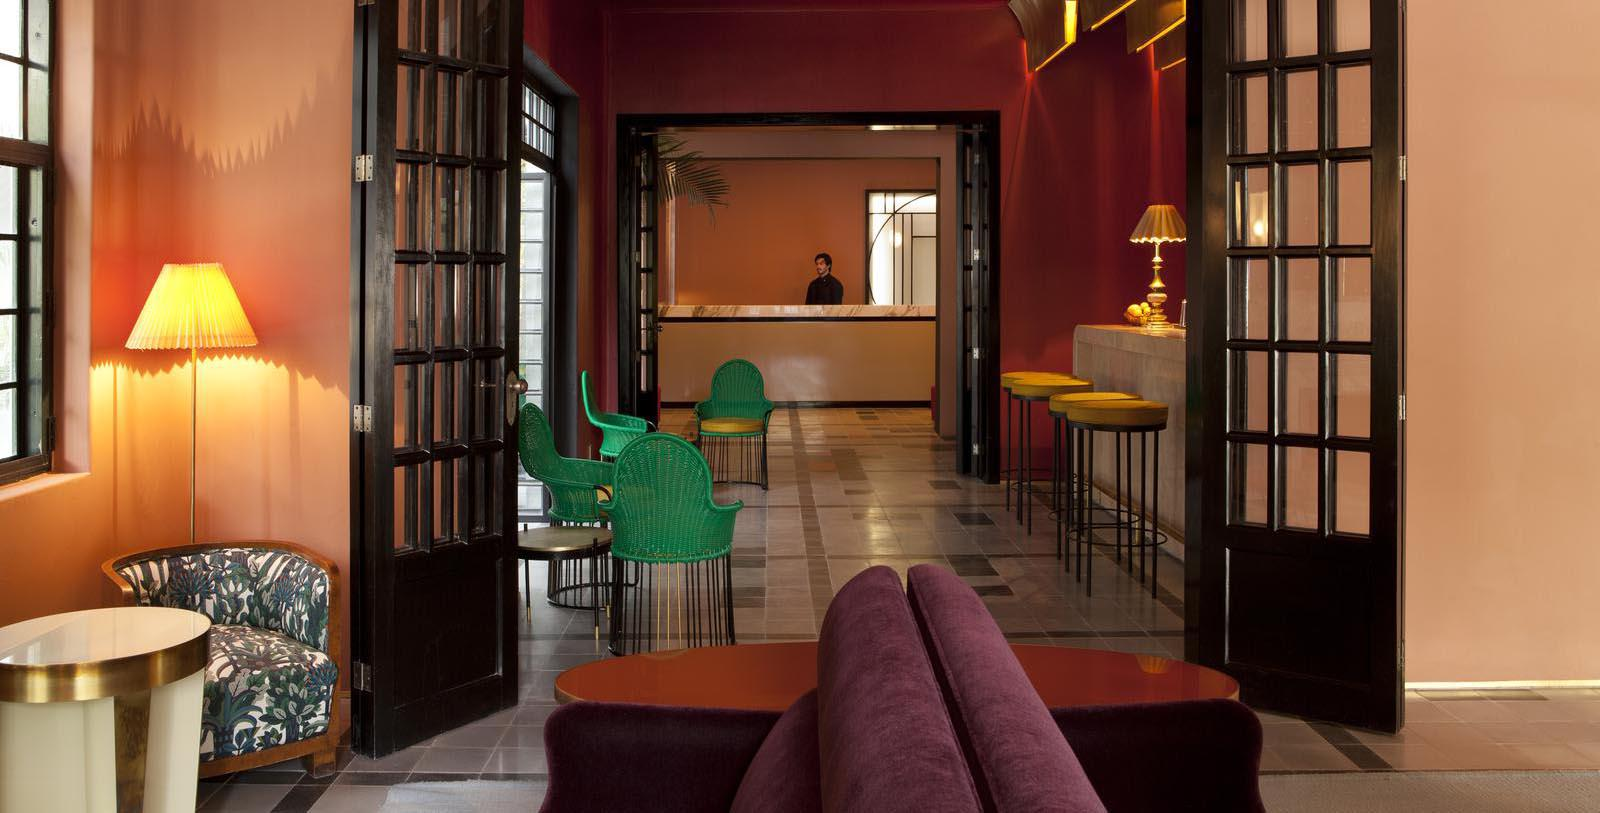 Image of entranceway front desk check in area Casa Habita, 1938, Member of Historic Hotels Worldwide, in Guadalajara, Mexico, Discover